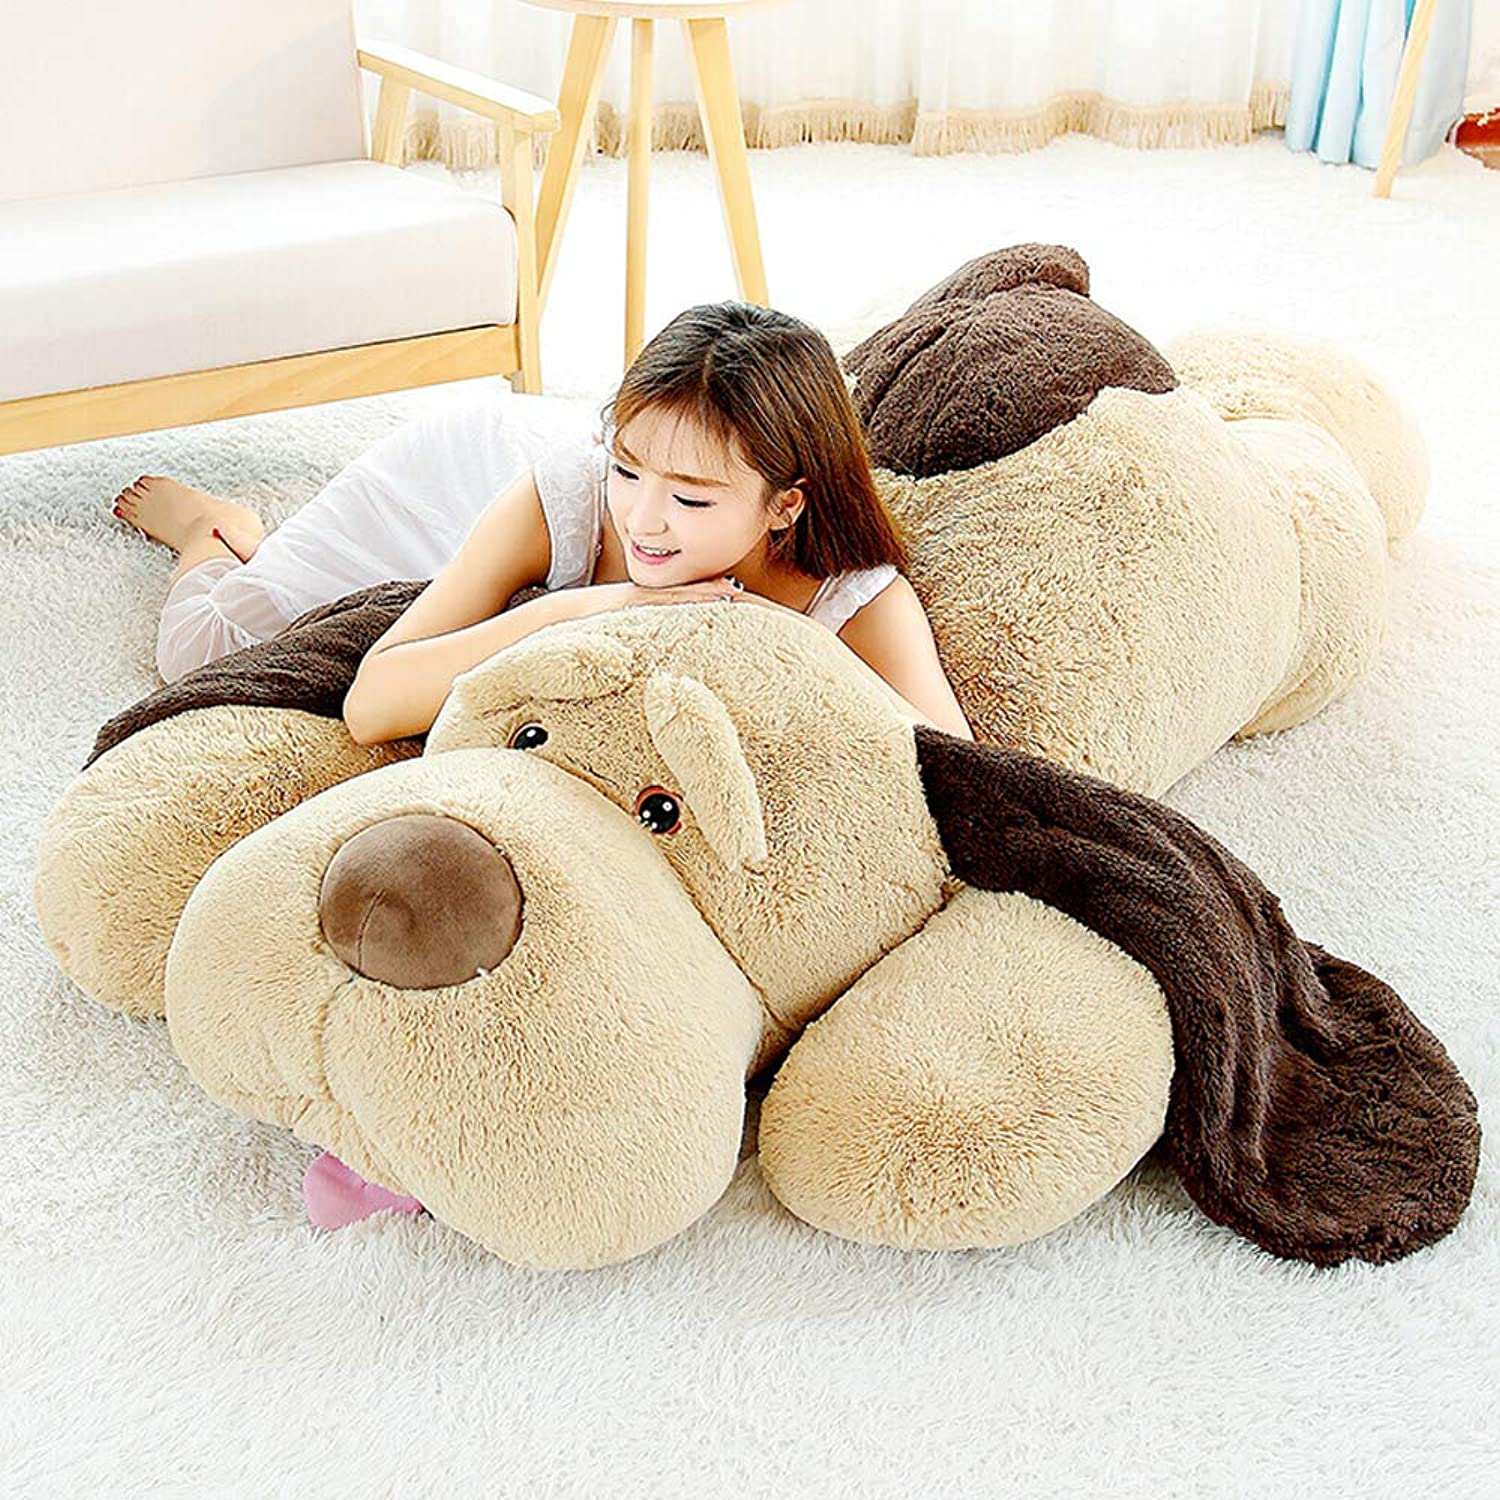 MaoGoLan Giant Stuffed Puppy Dog Big Plush Extra Large Stuffed Animals Soft Plush Dog Pillow Big Plush Toy for Girls Kids (51 inch)